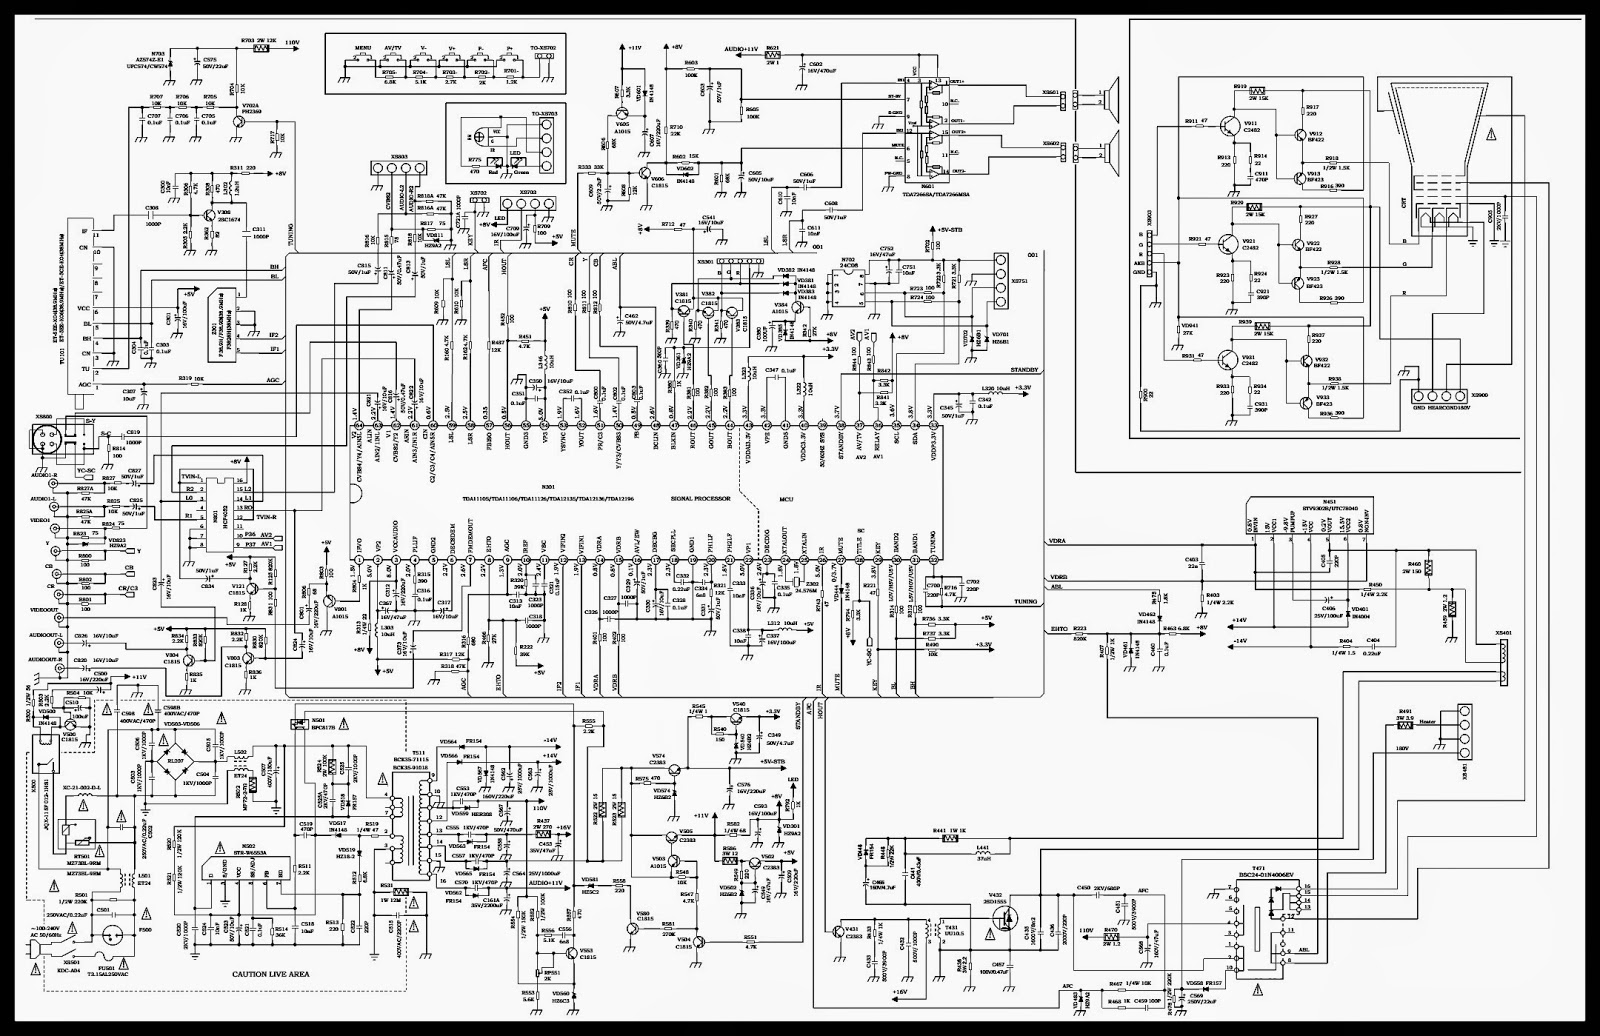 Cpu Schematic Design